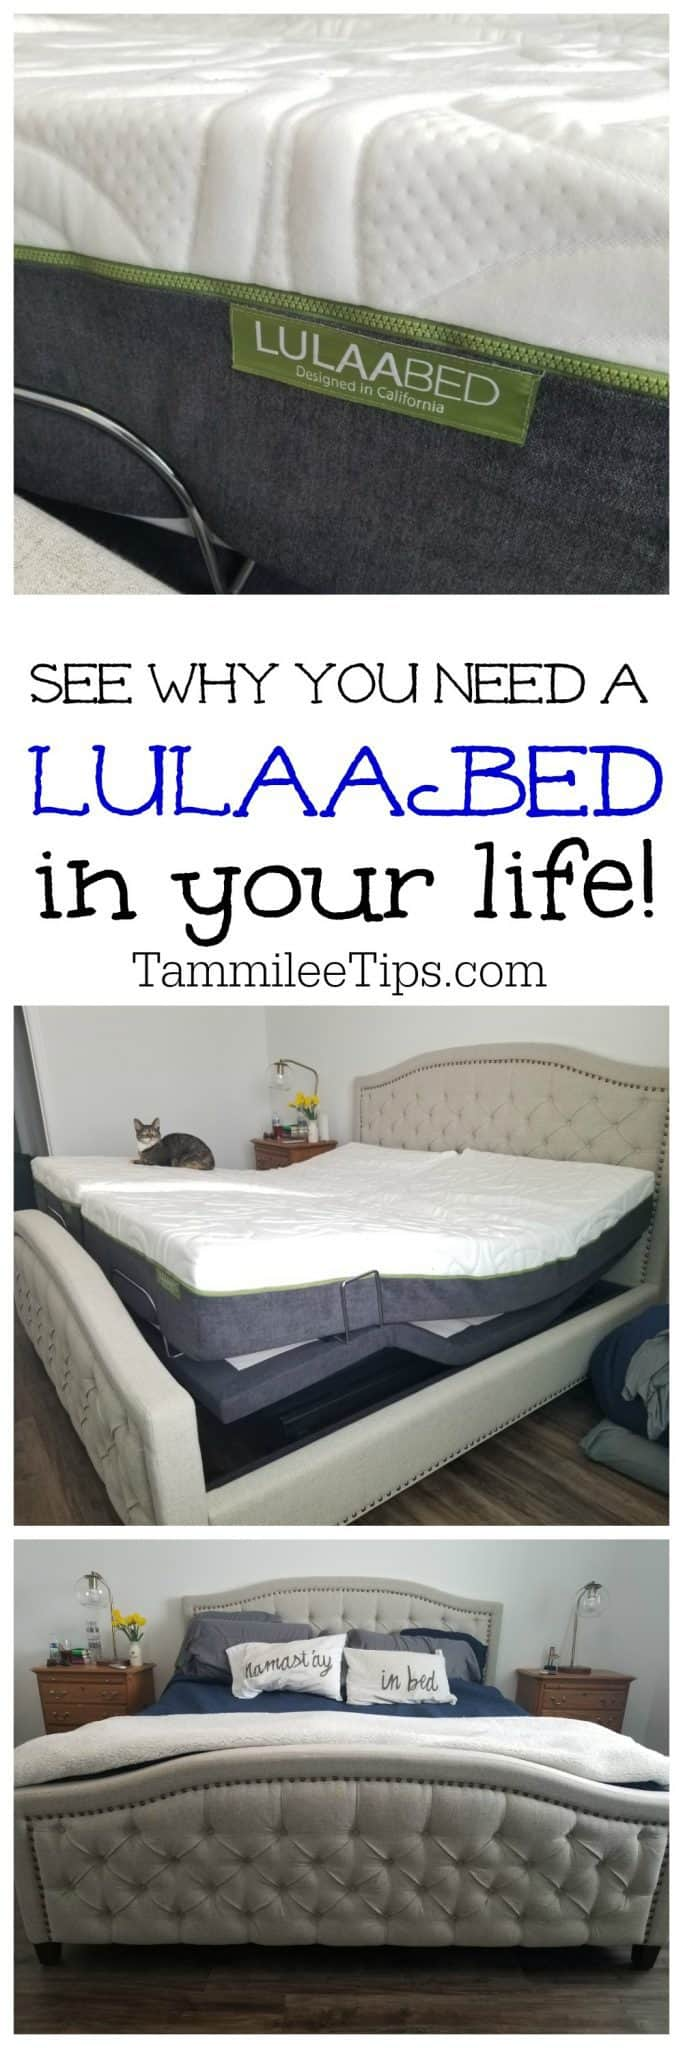 See why you need a LulaaBED from Sam's Club in your life! Fully adjustable mattress, remote control, massage and more! #ad #lulaaBED